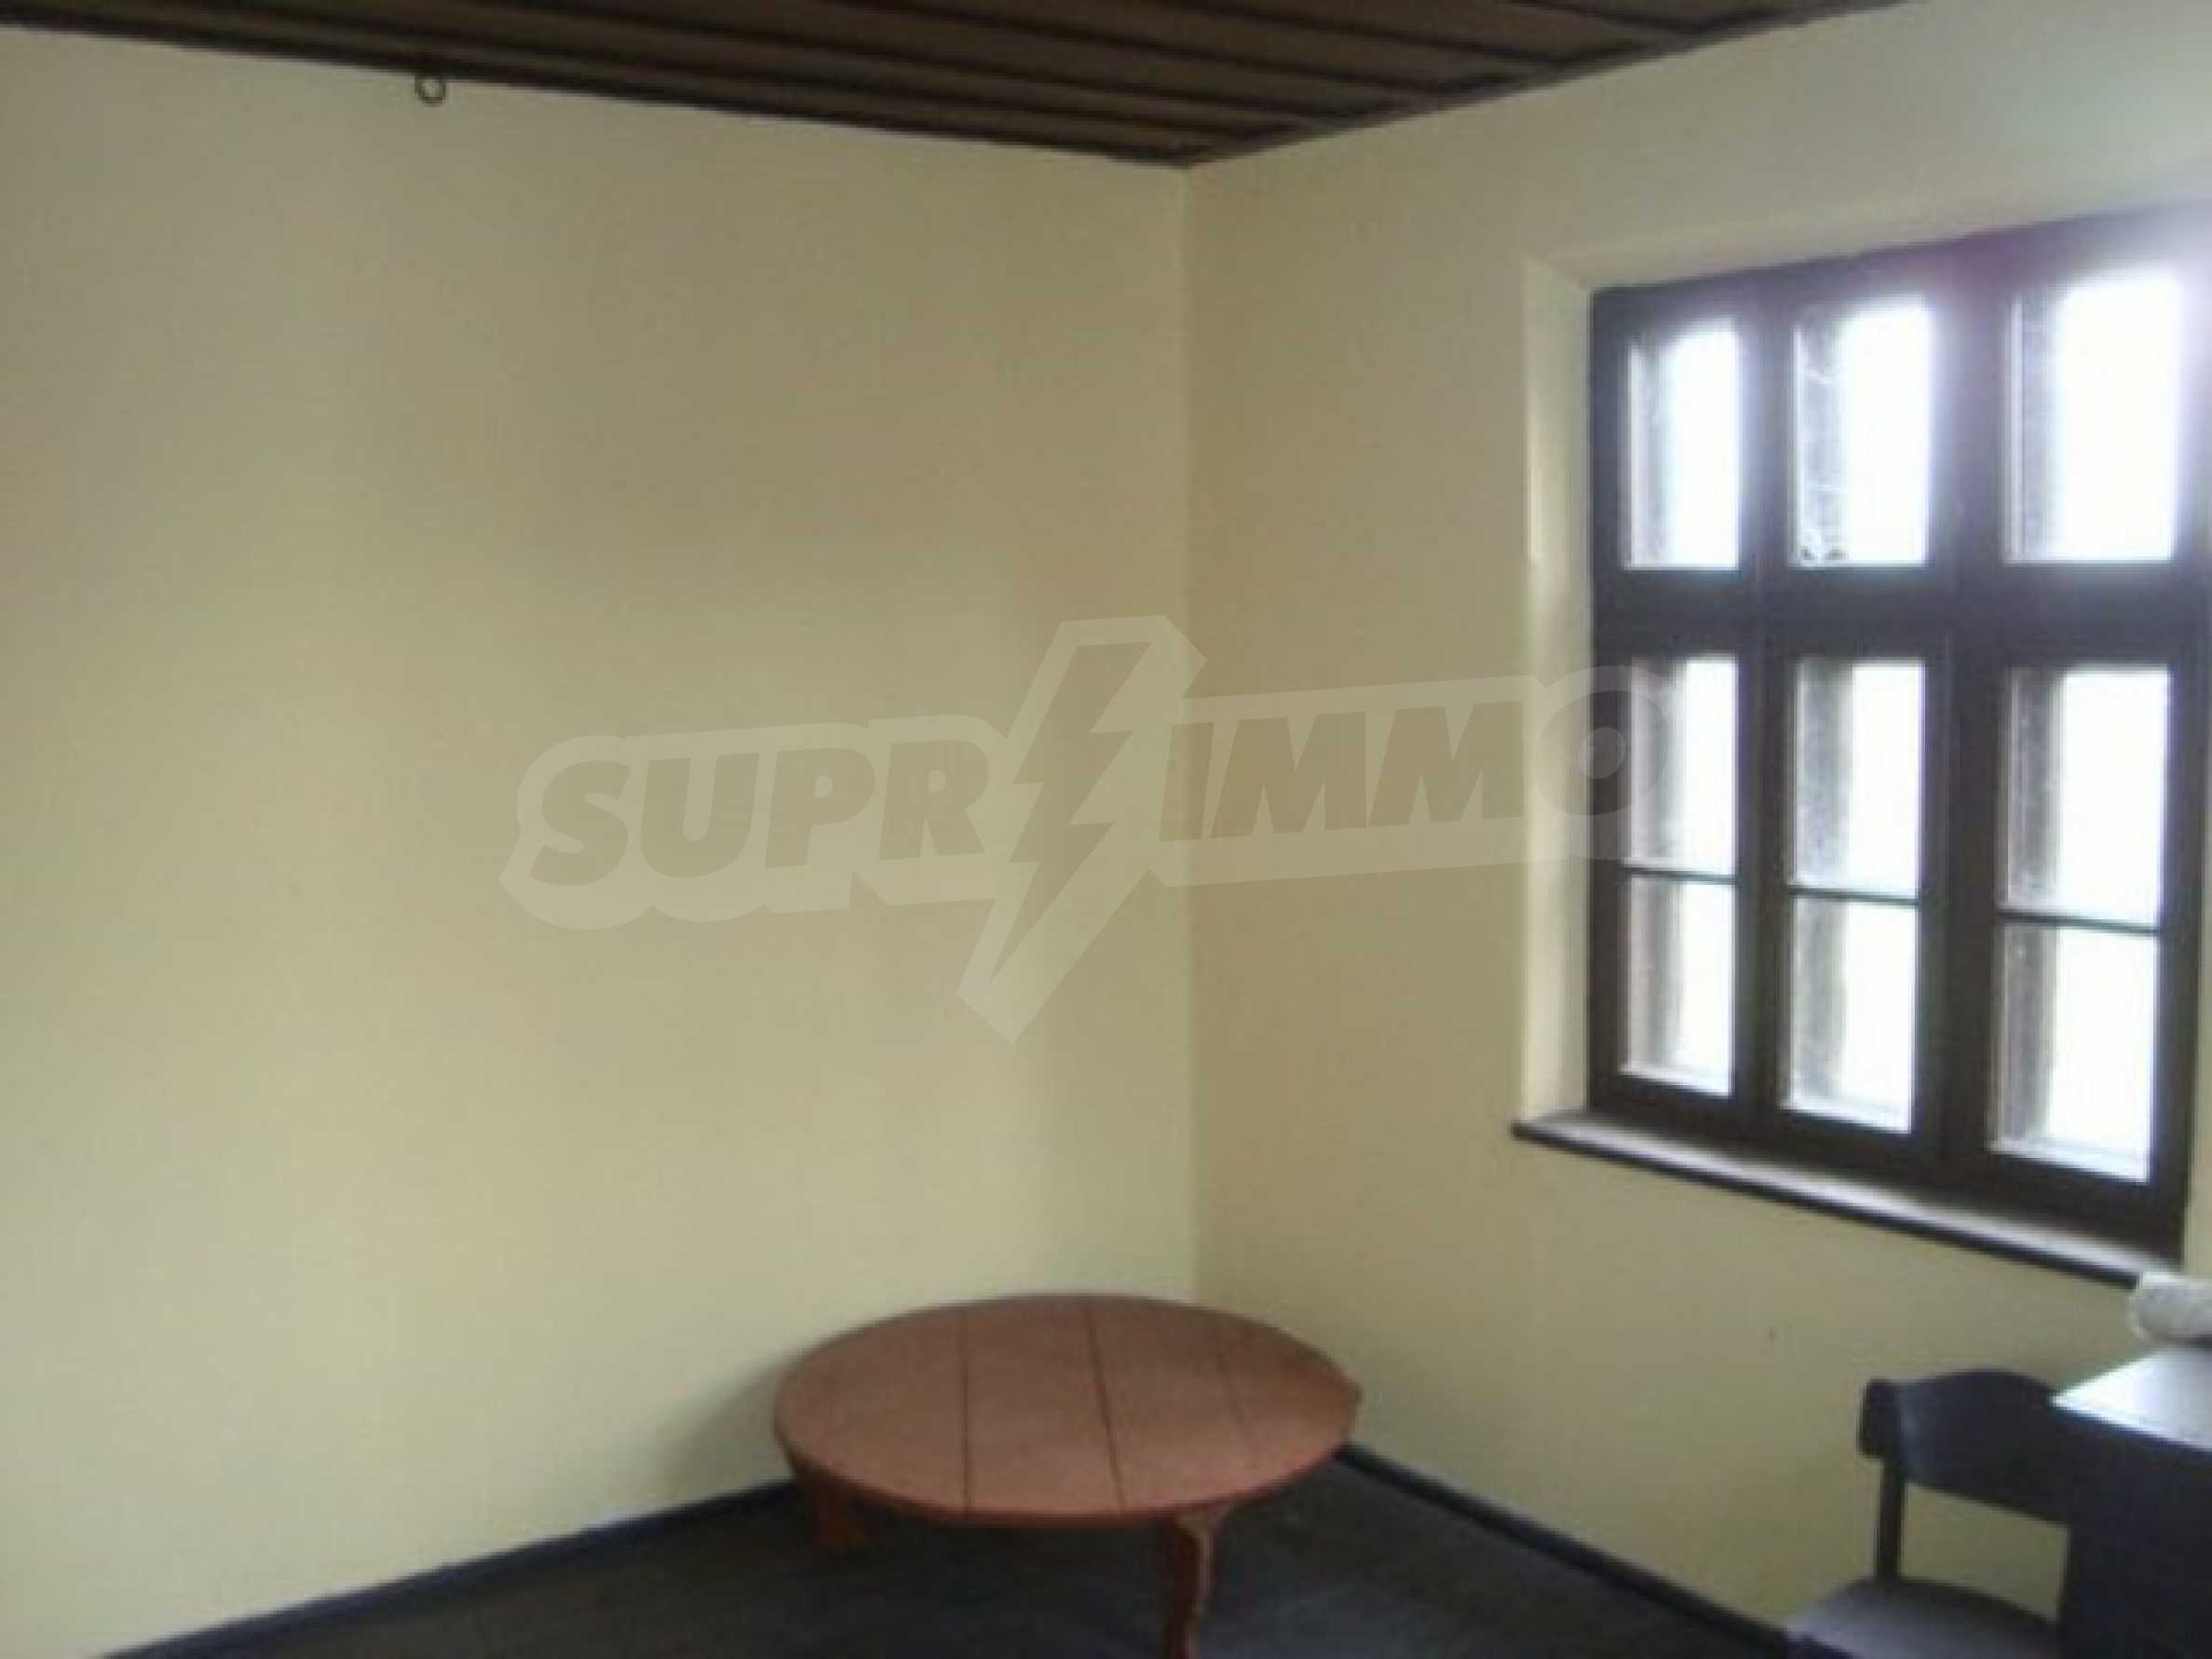 Two-storey house for sale in the village of Dolna Lipnitsa 8